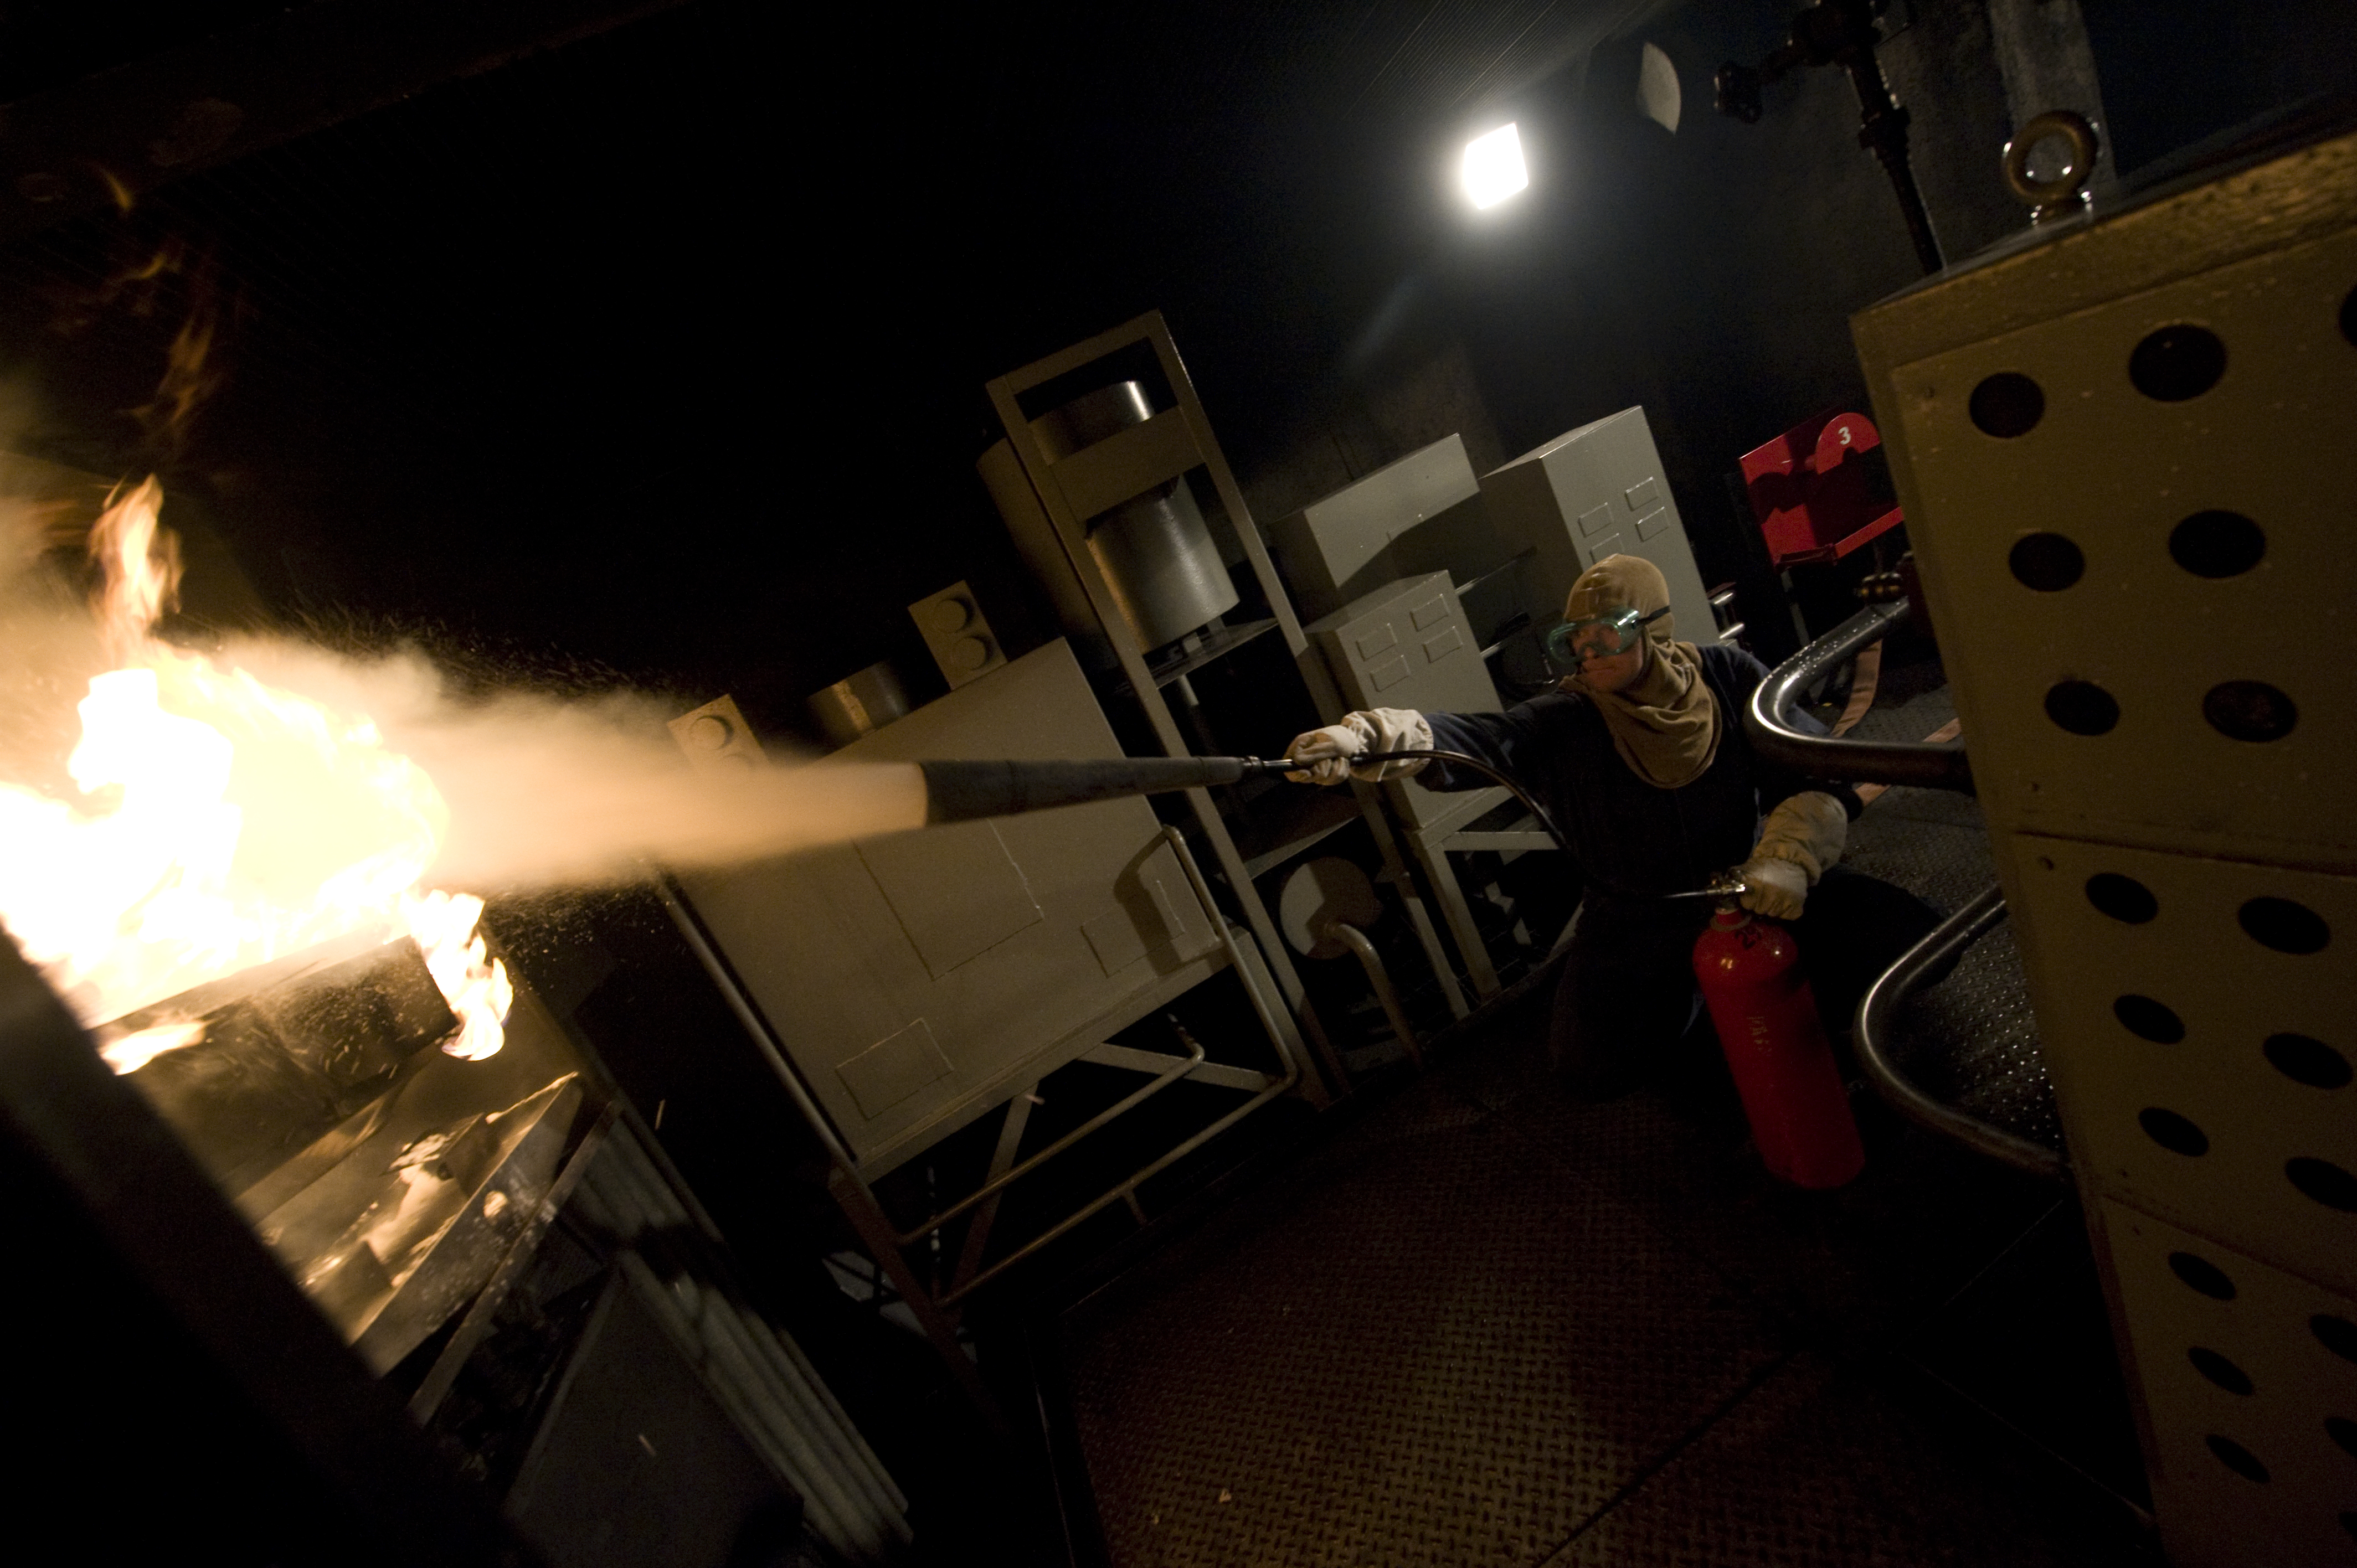 Basic Training Photos >> File:US Navy 100120-N-7090S-340 A student extinguishes an electrical fire using CO2 in the ...